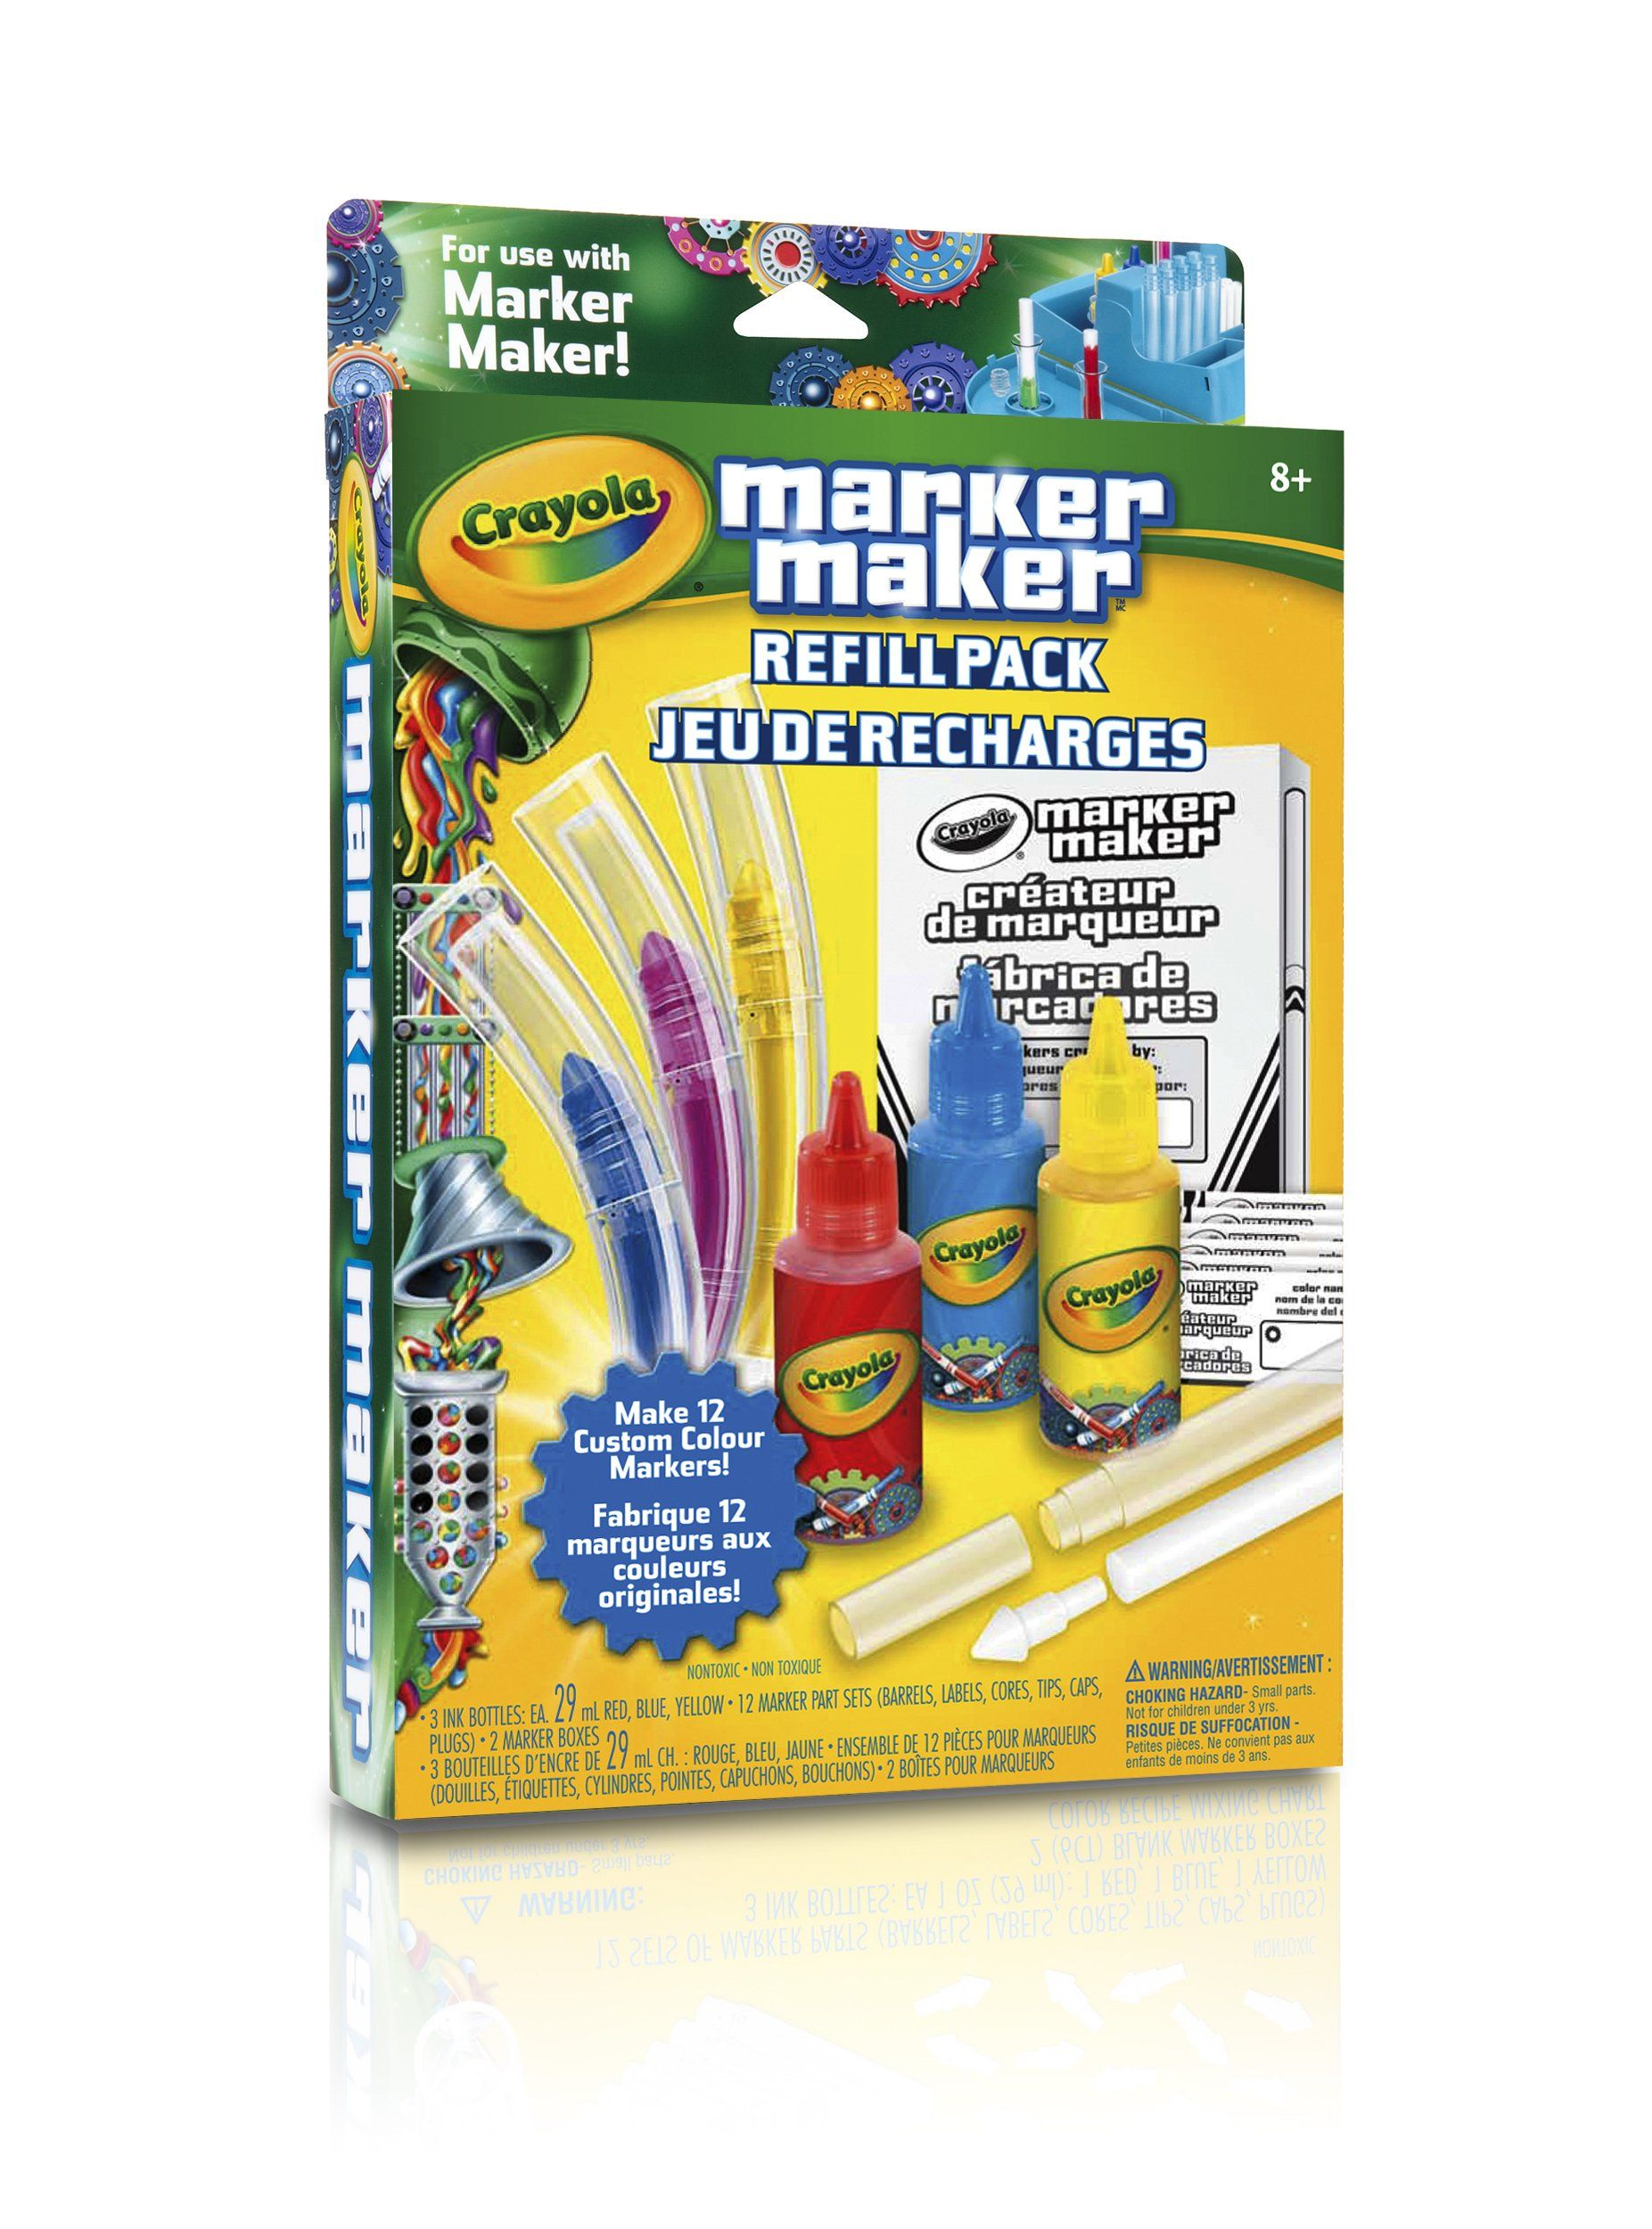 Crayola Marker Maker Refill Pack Cores Red Blue